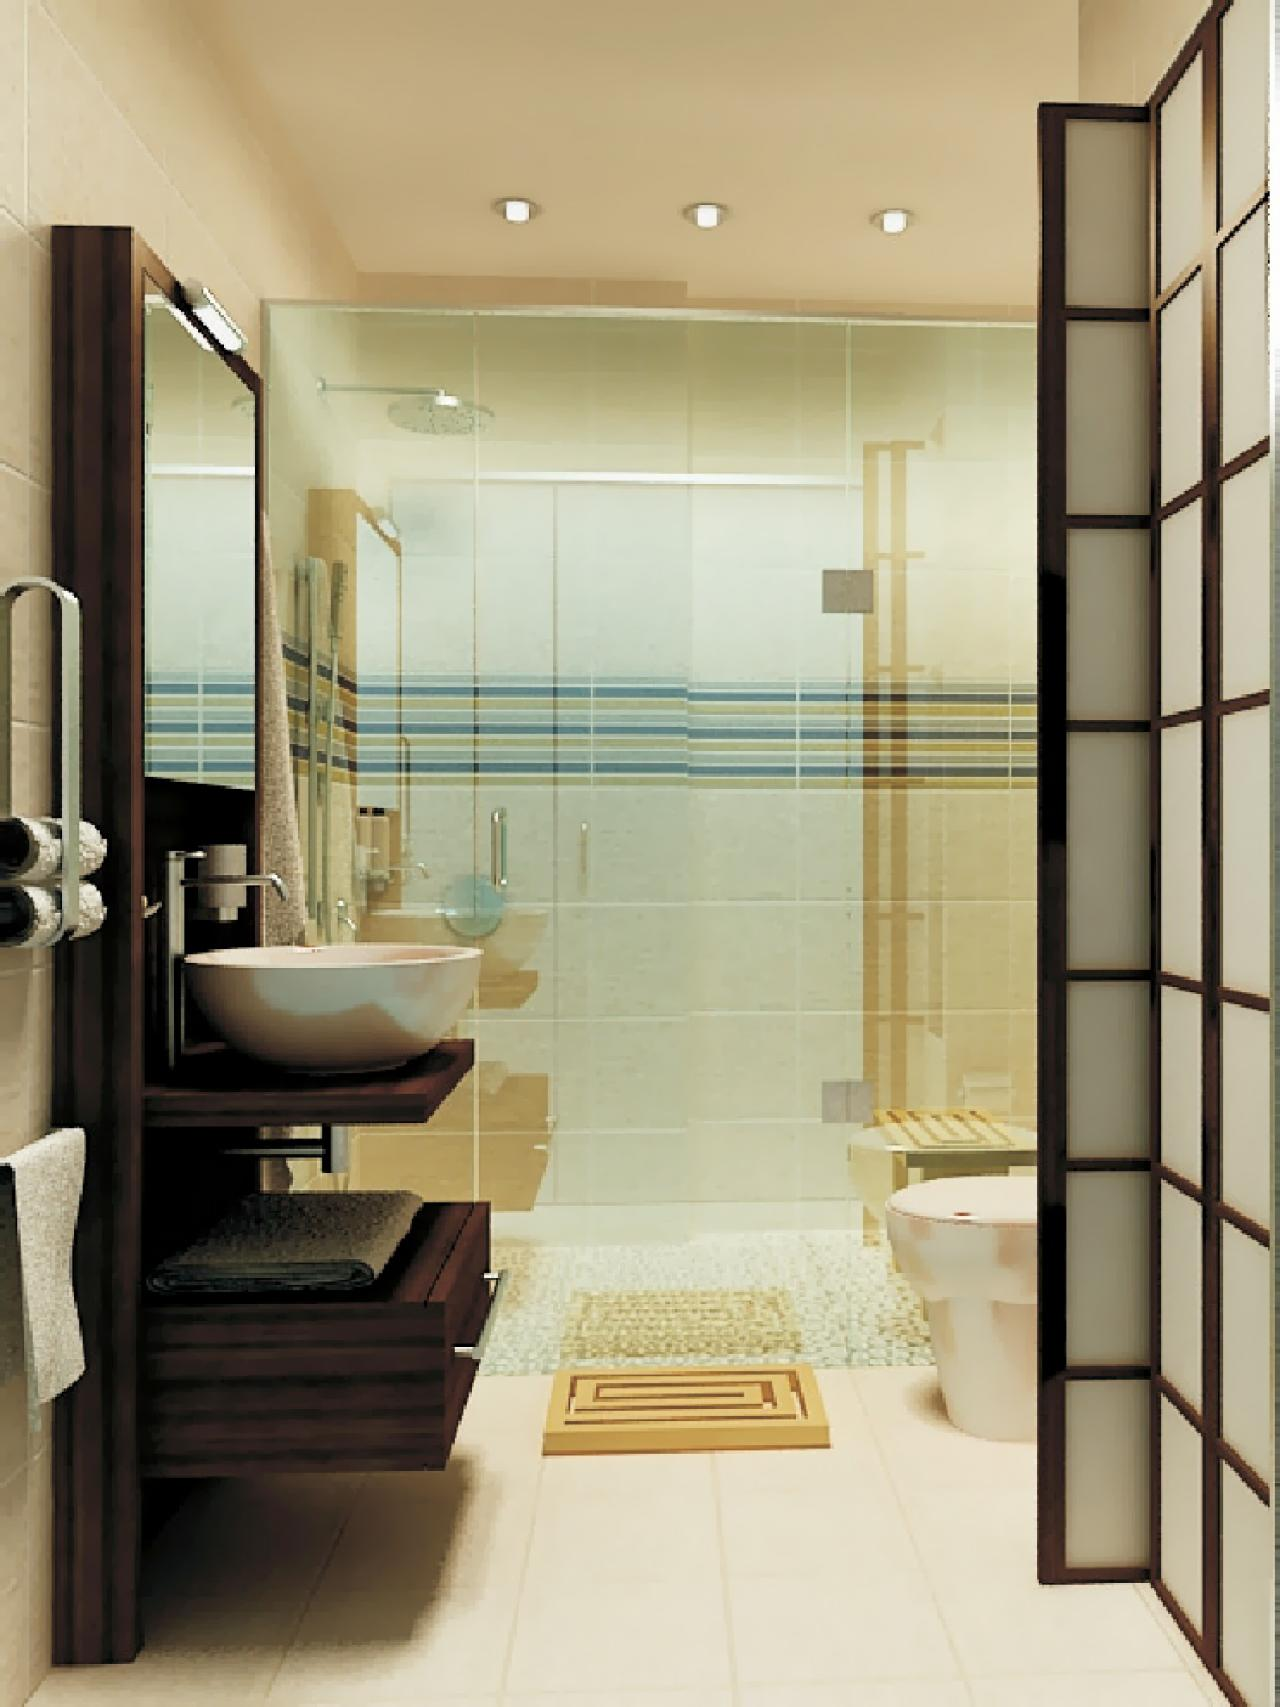 25 Mid Century Bathroom Design Ideas Decoration Love